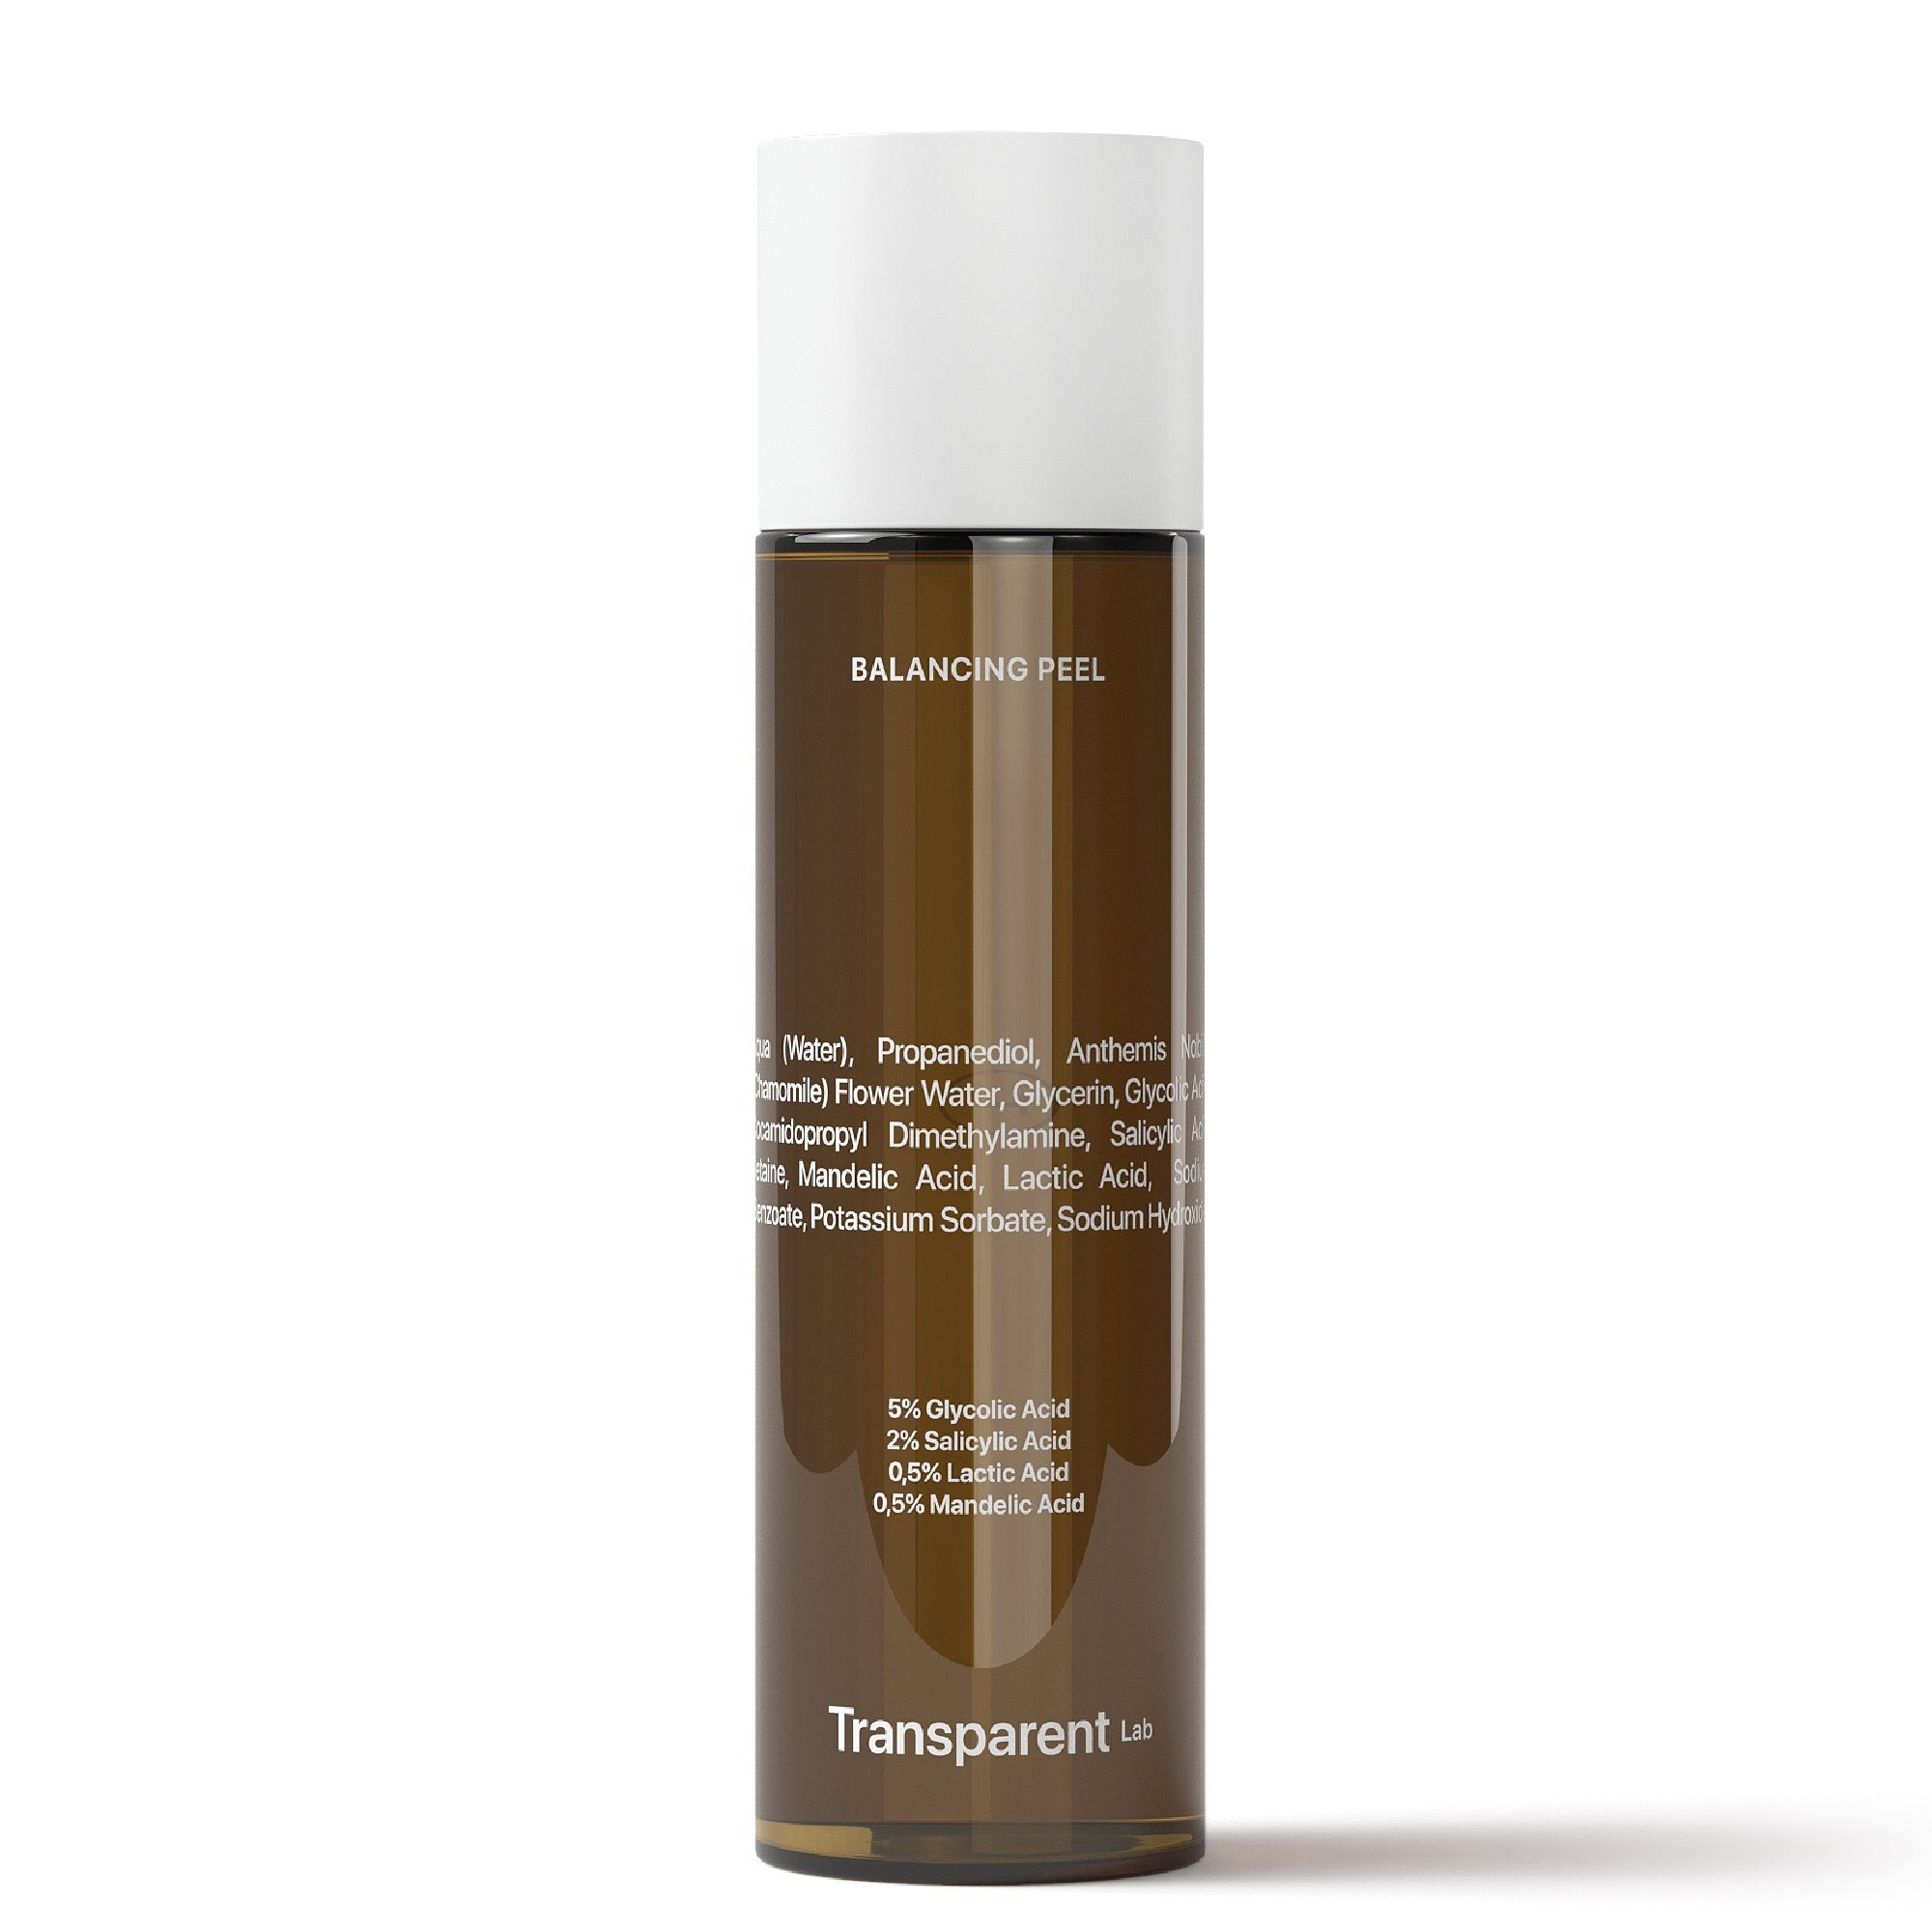 Balancing Peel Toner (120ml) Toner Transparent Lab